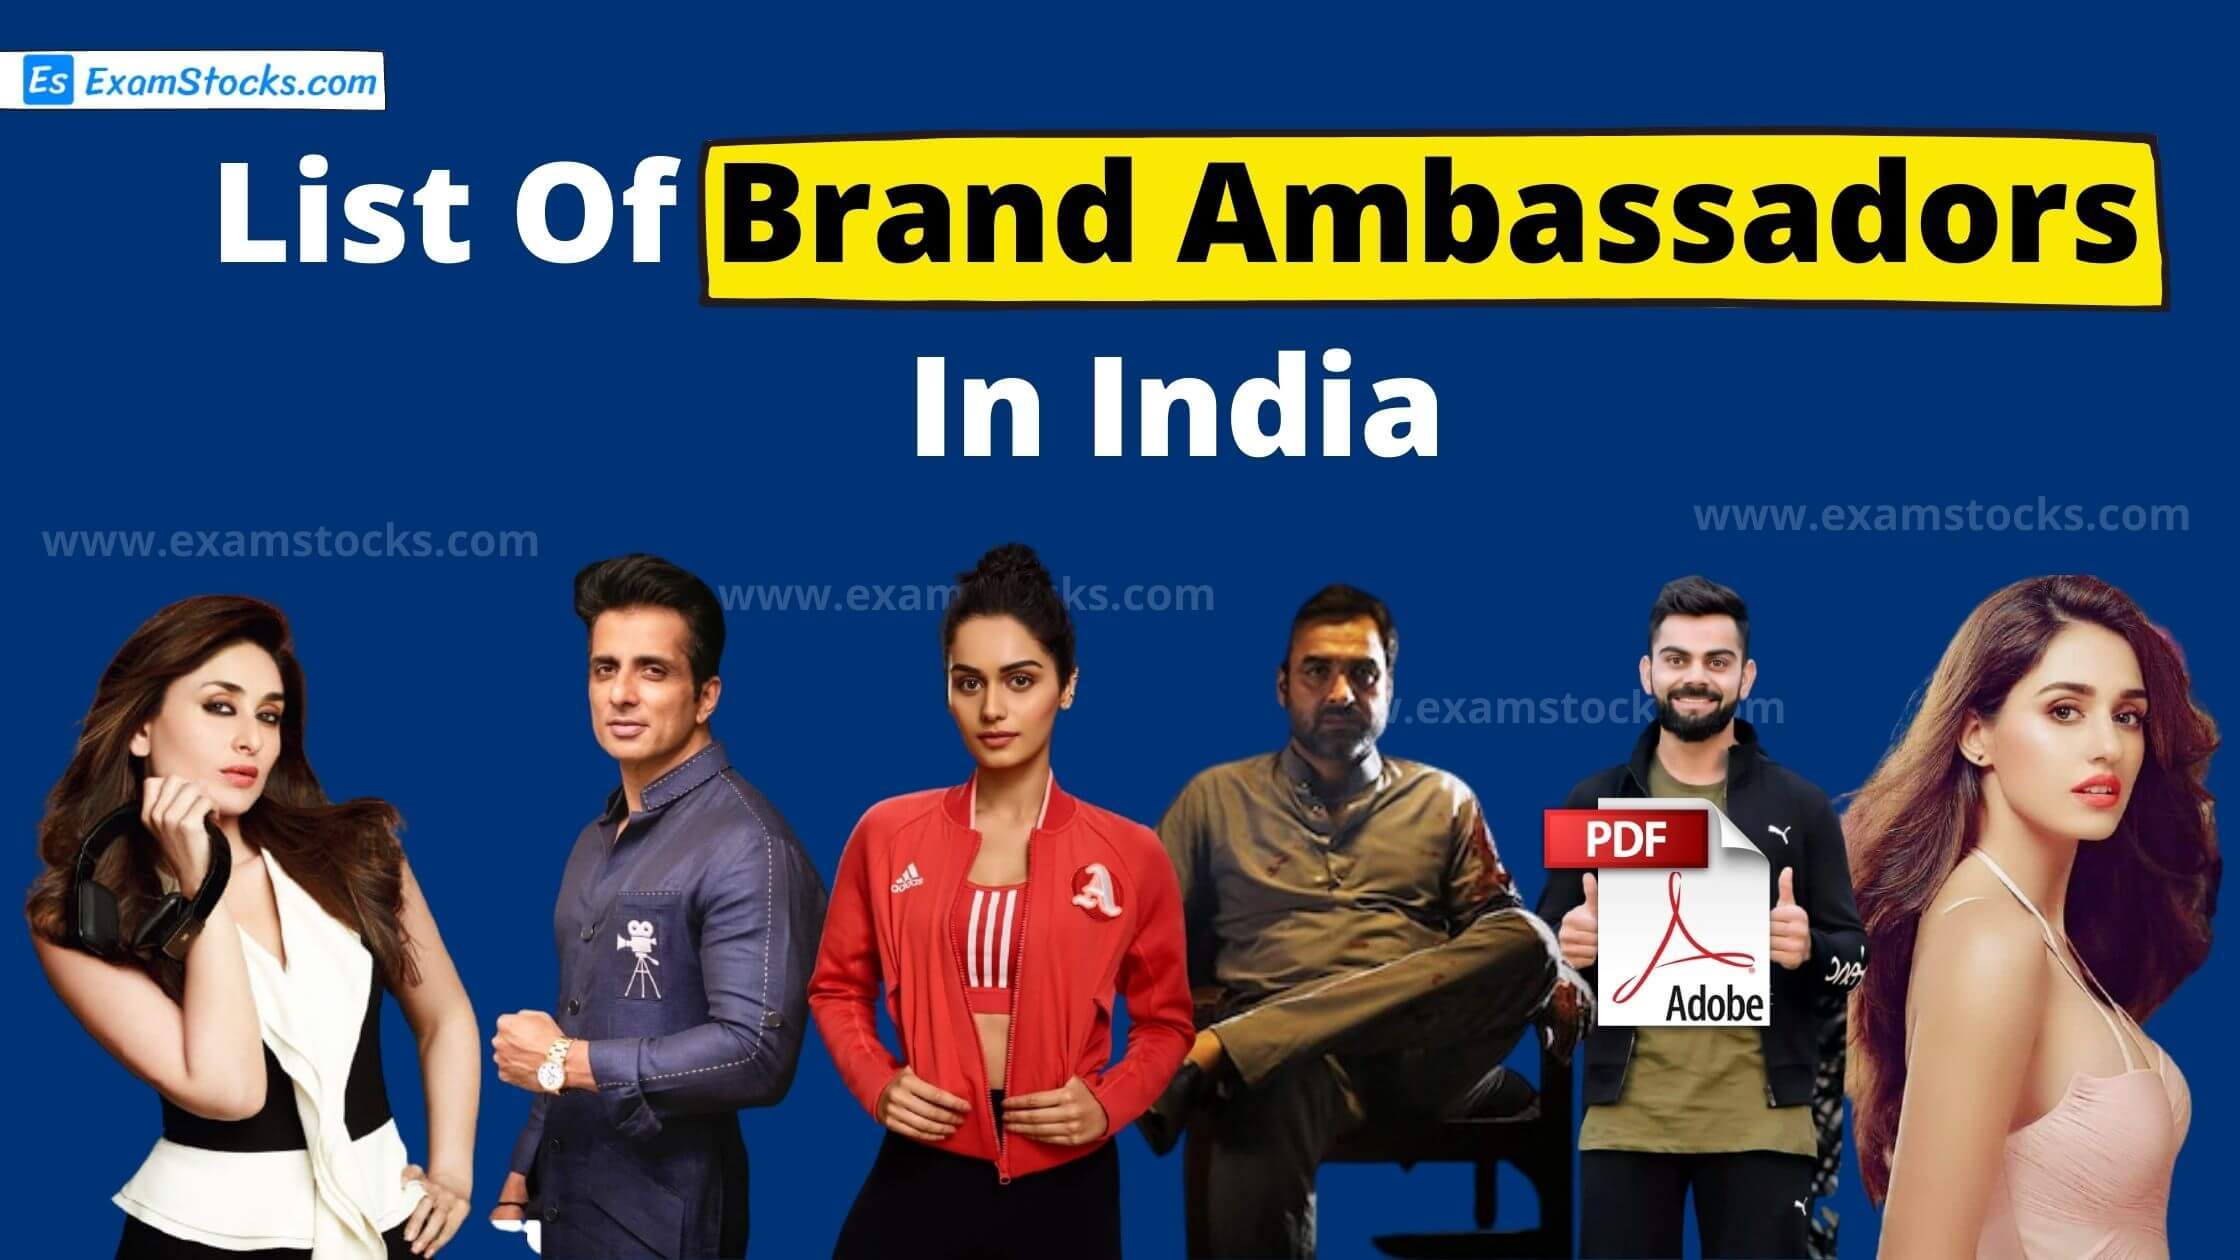 Latest List Of Brand Ambassadors In India 2020 PDF